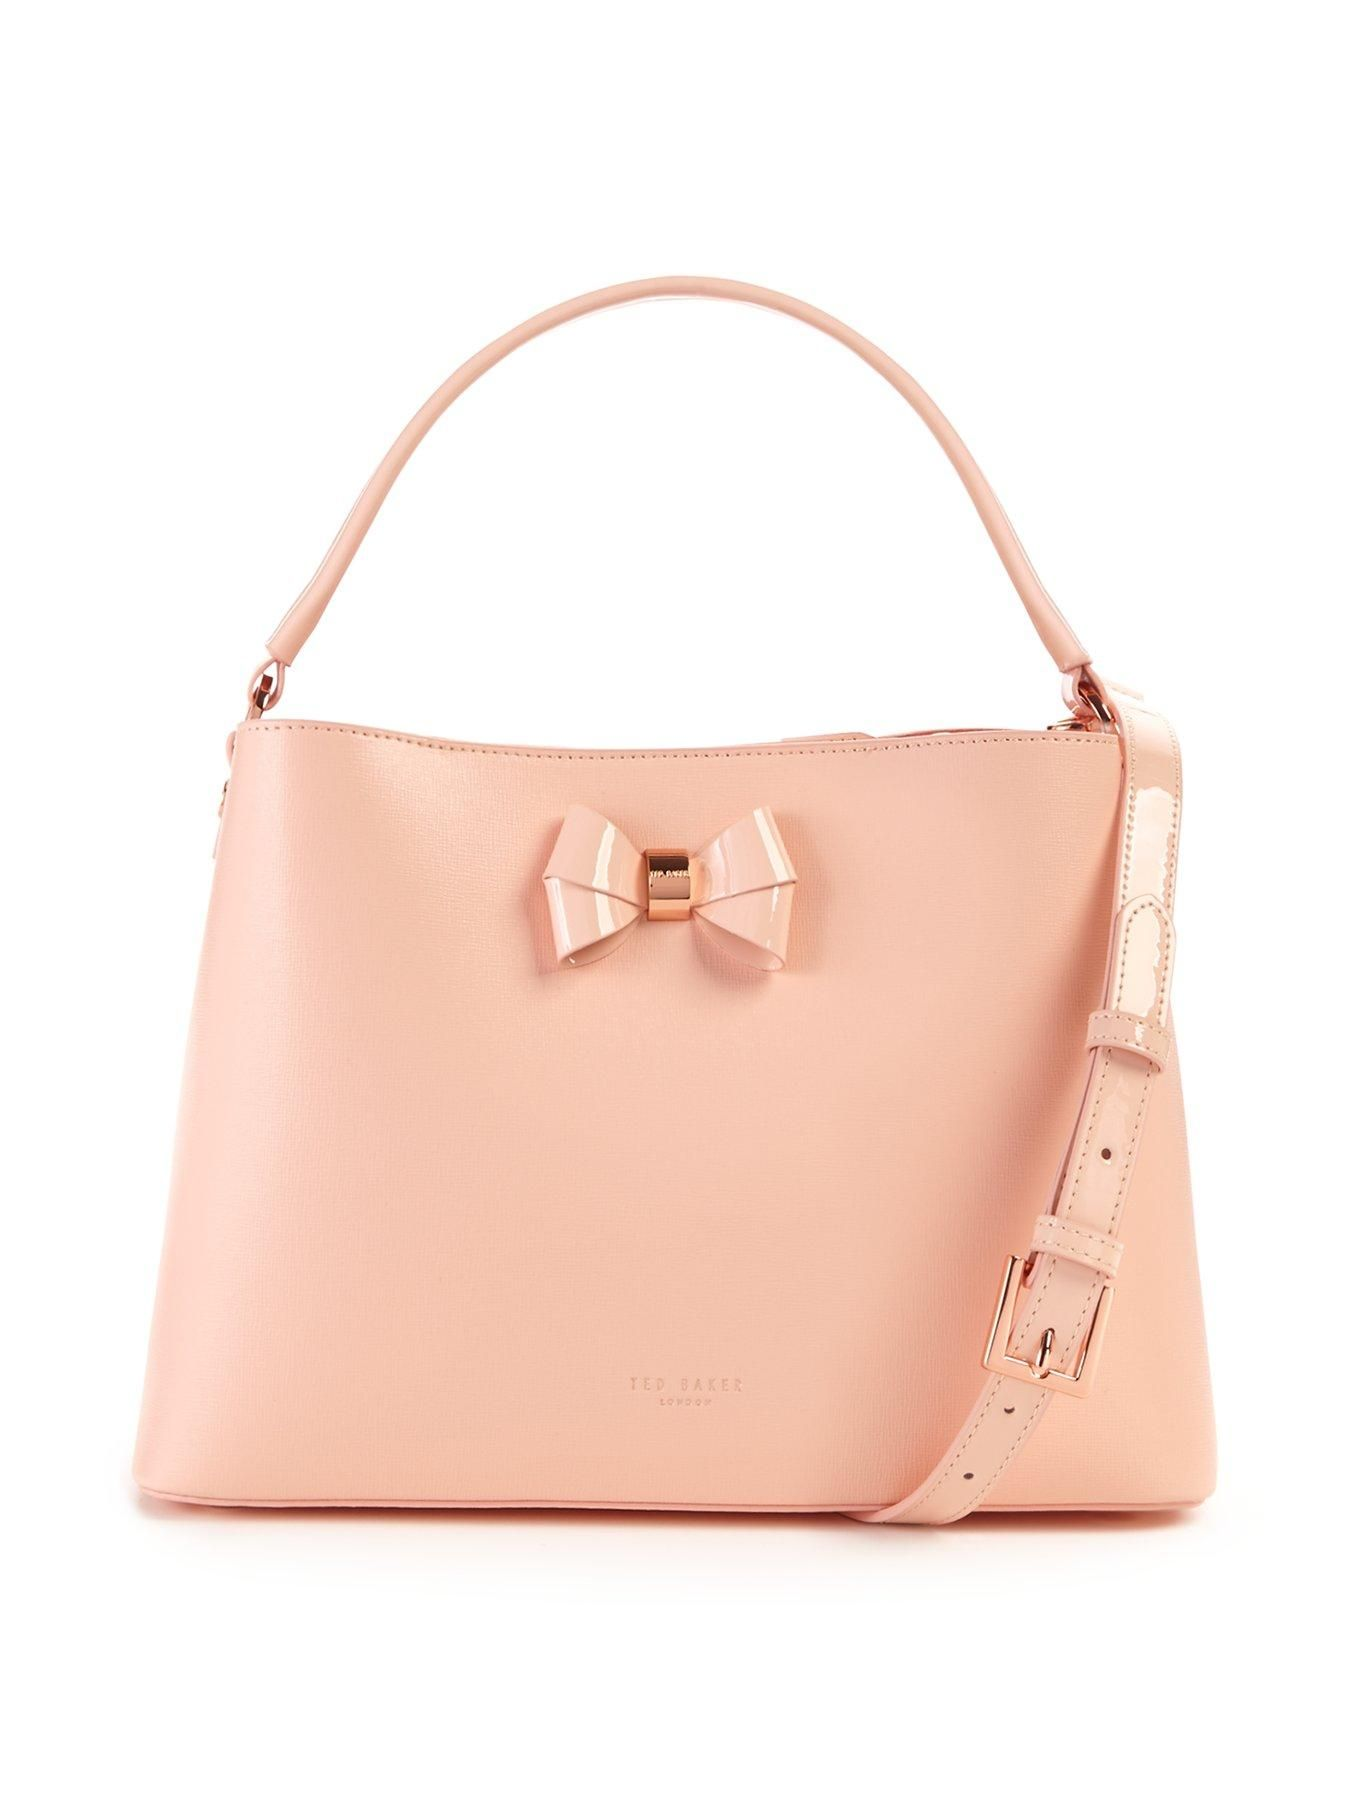 d9bd520d7 Ted Baker Leather Bow Tote Bag – Peach Ted Baker continues with his passion  for designing